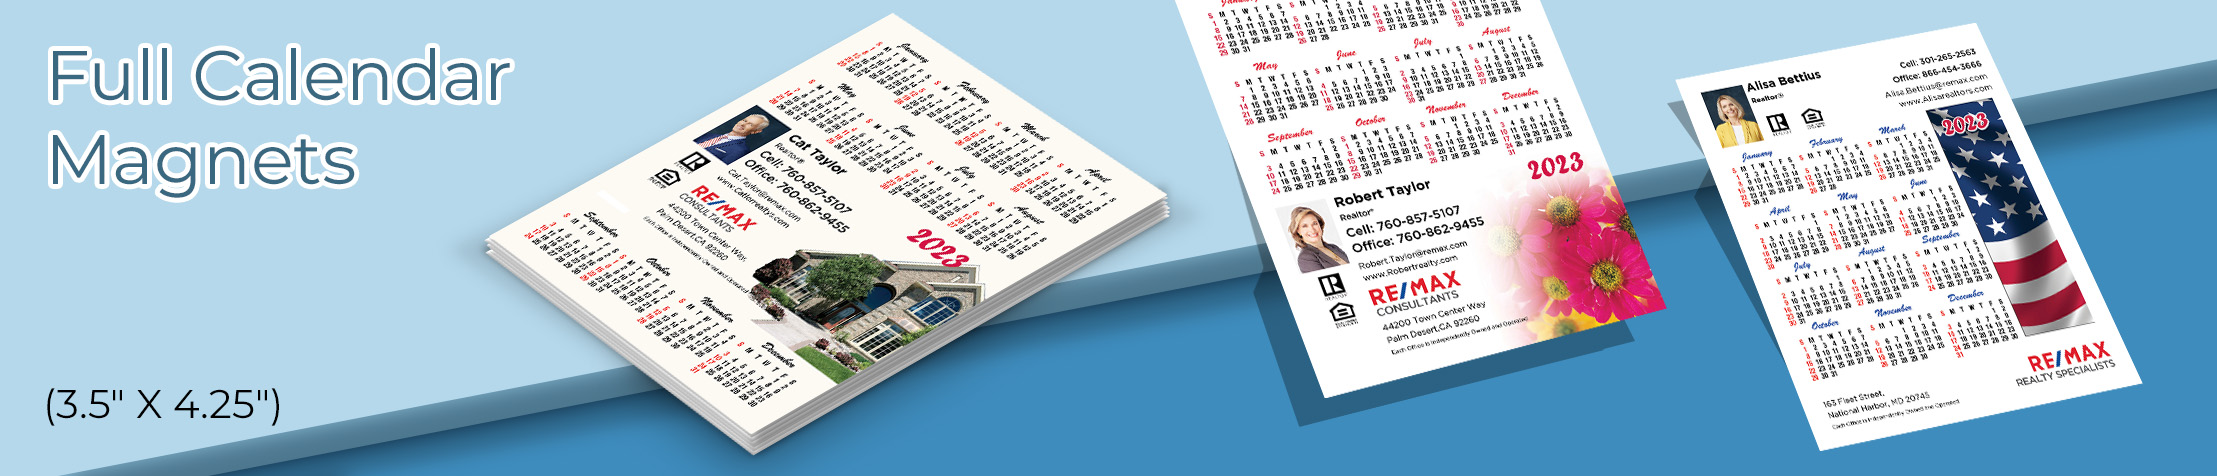 "RE/MAX Real Estate Full Calendar Magnets - RE/MAX 2019 calendars, 3.5"" by 4.25"" 